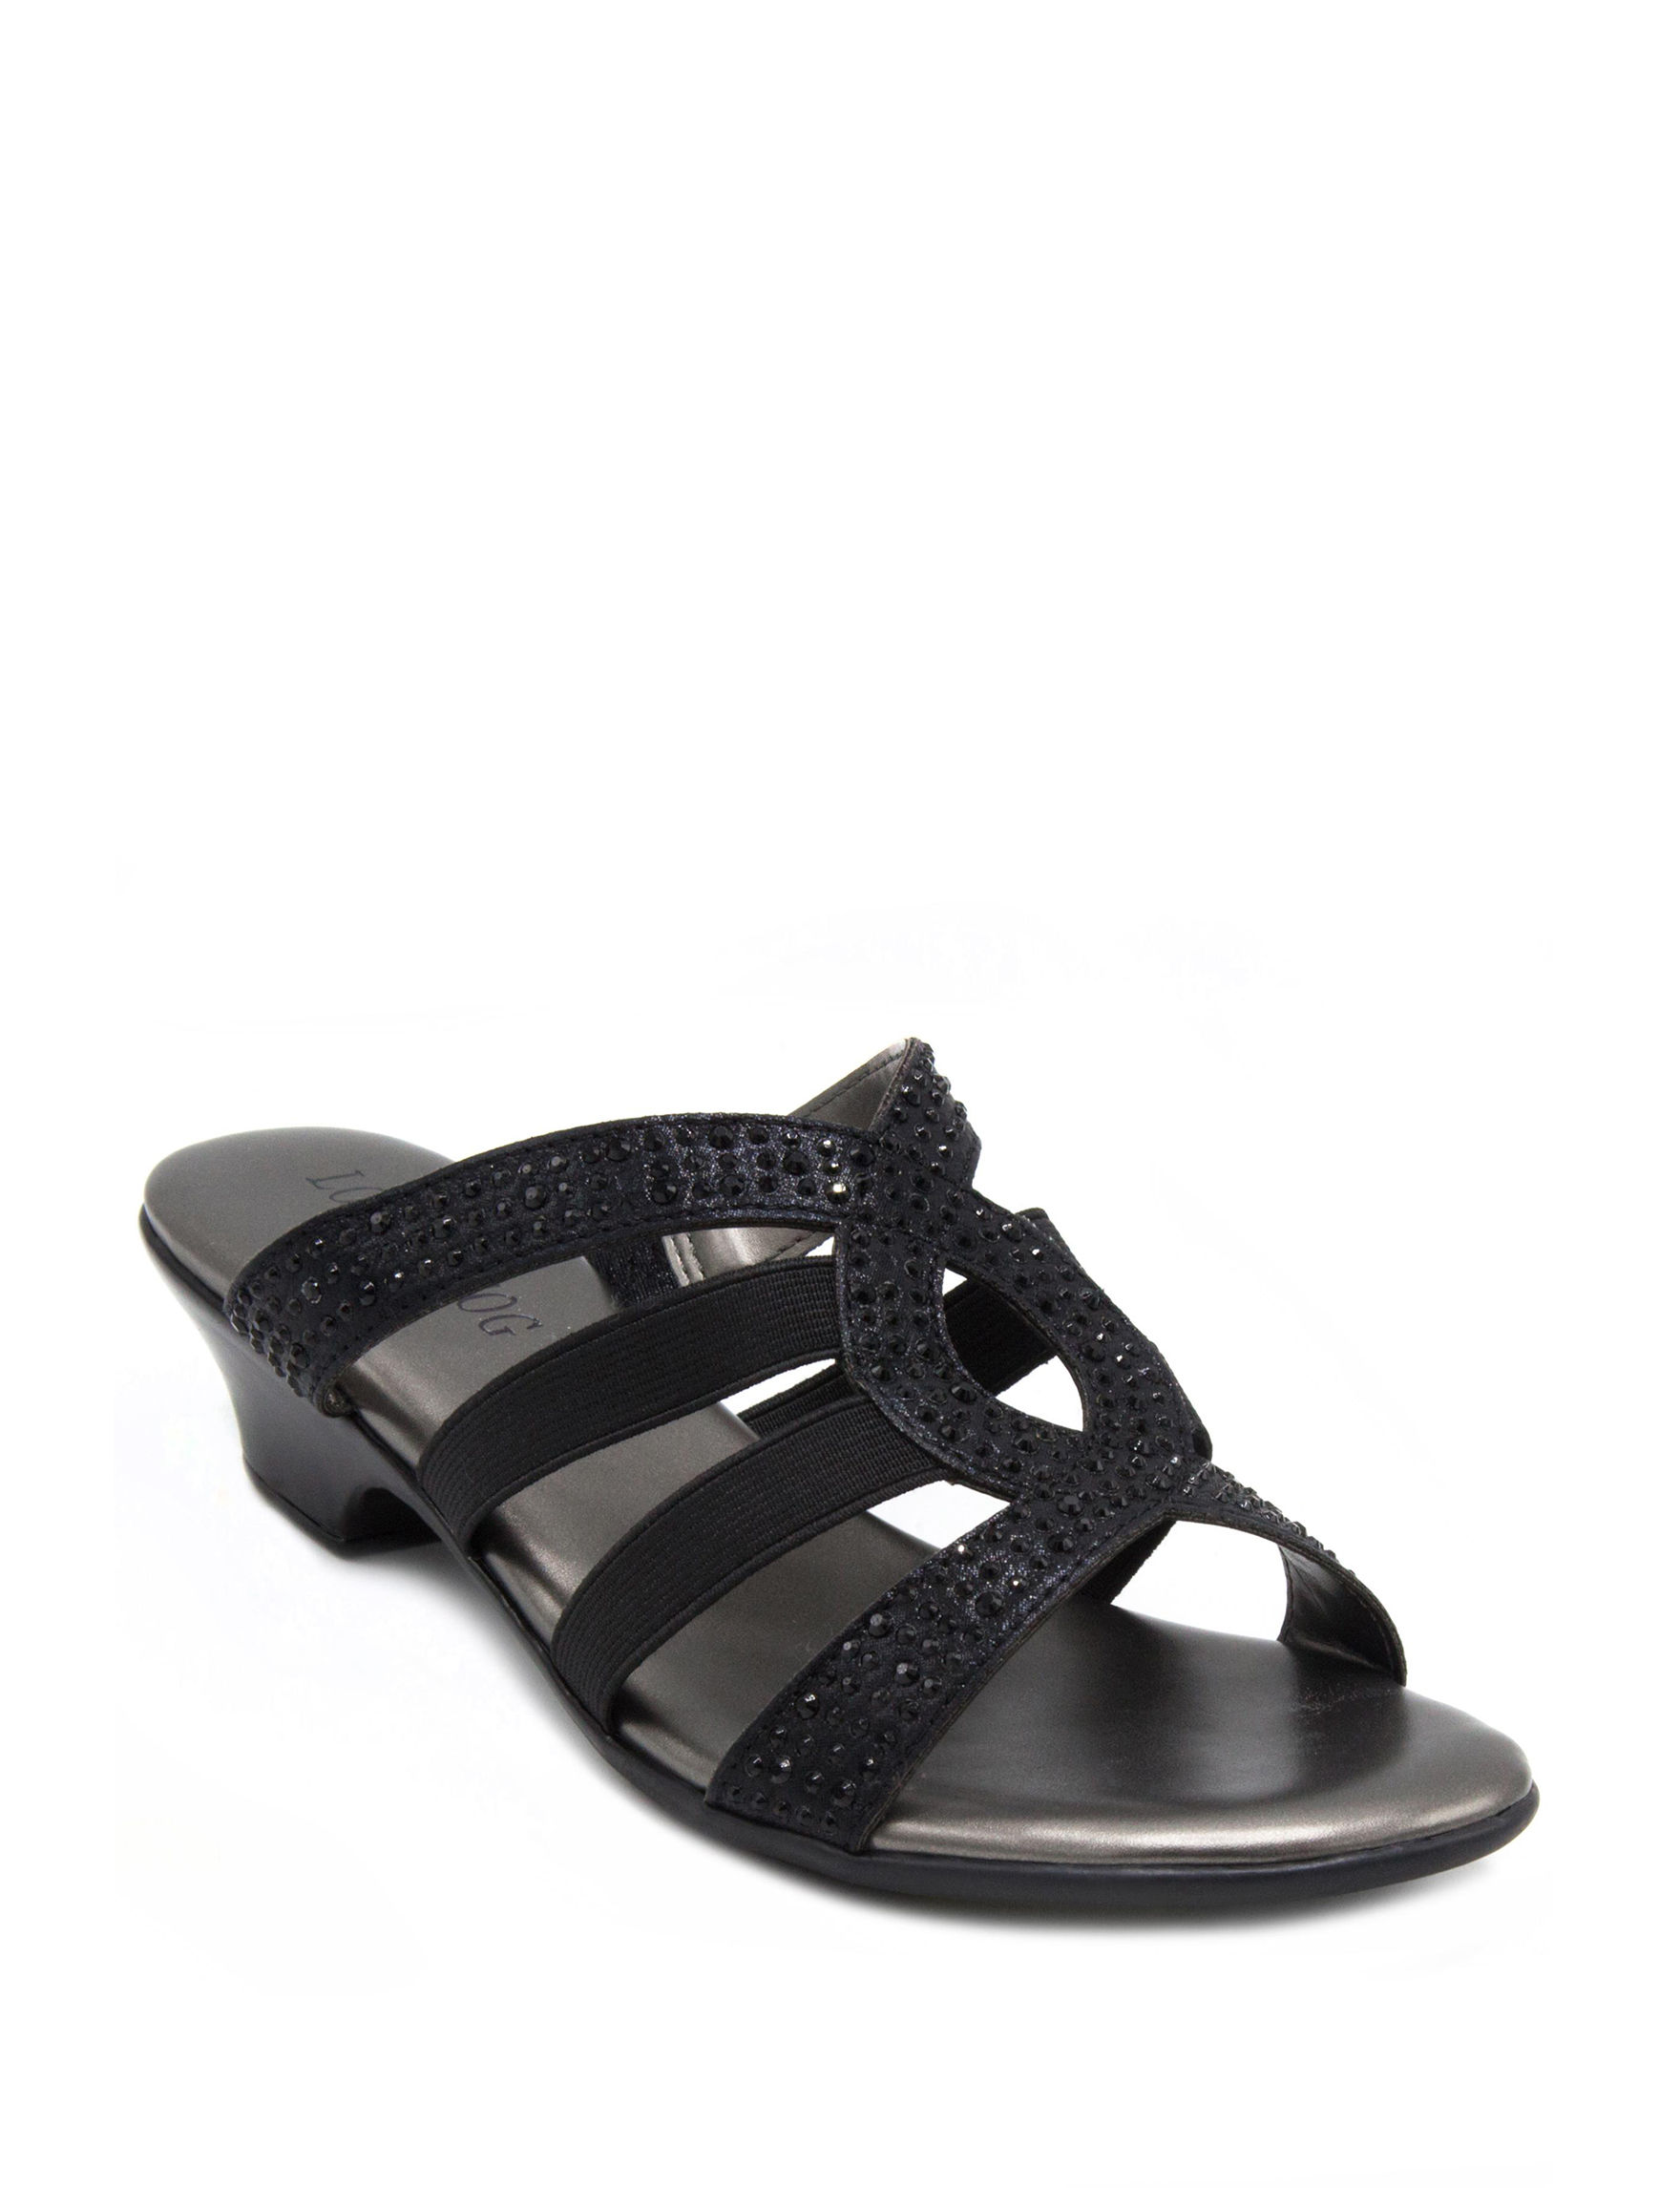 London Fog Black Heeled Sandals